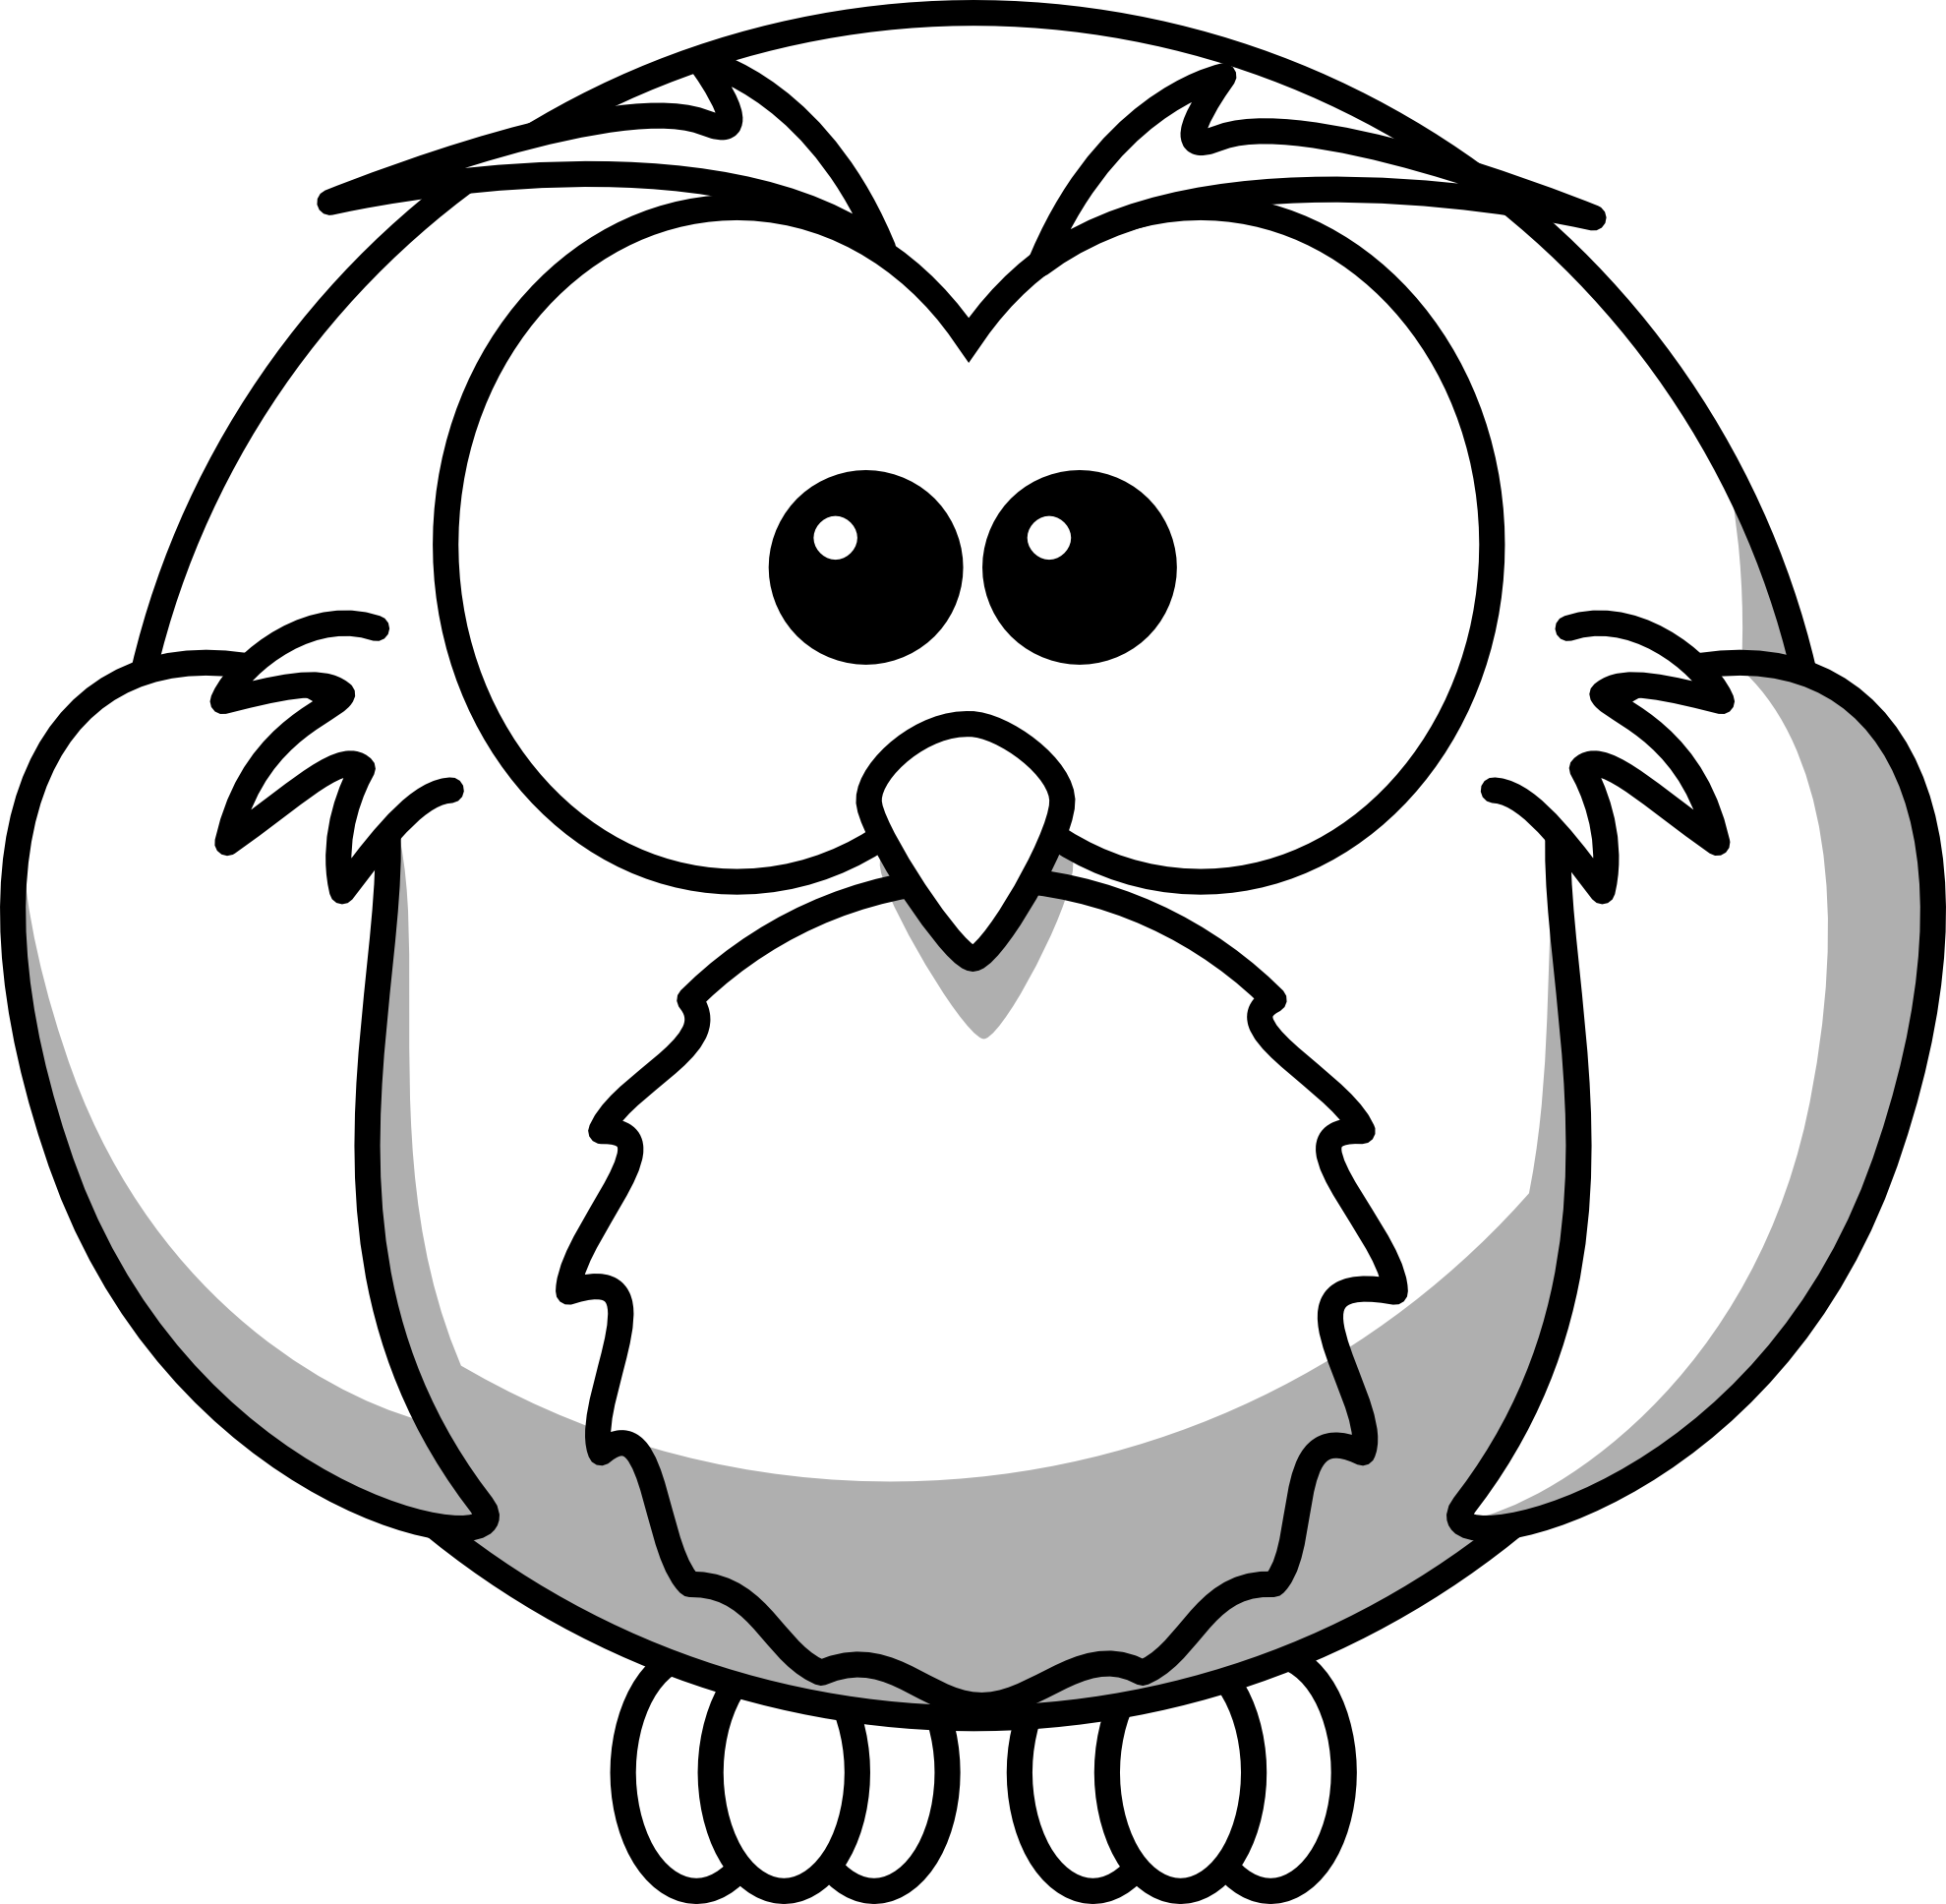 House fly clipart black and white vector transparent stock Owl Clipart Black And White | Clipart Panda - Free Clipart Images vector transparent stock